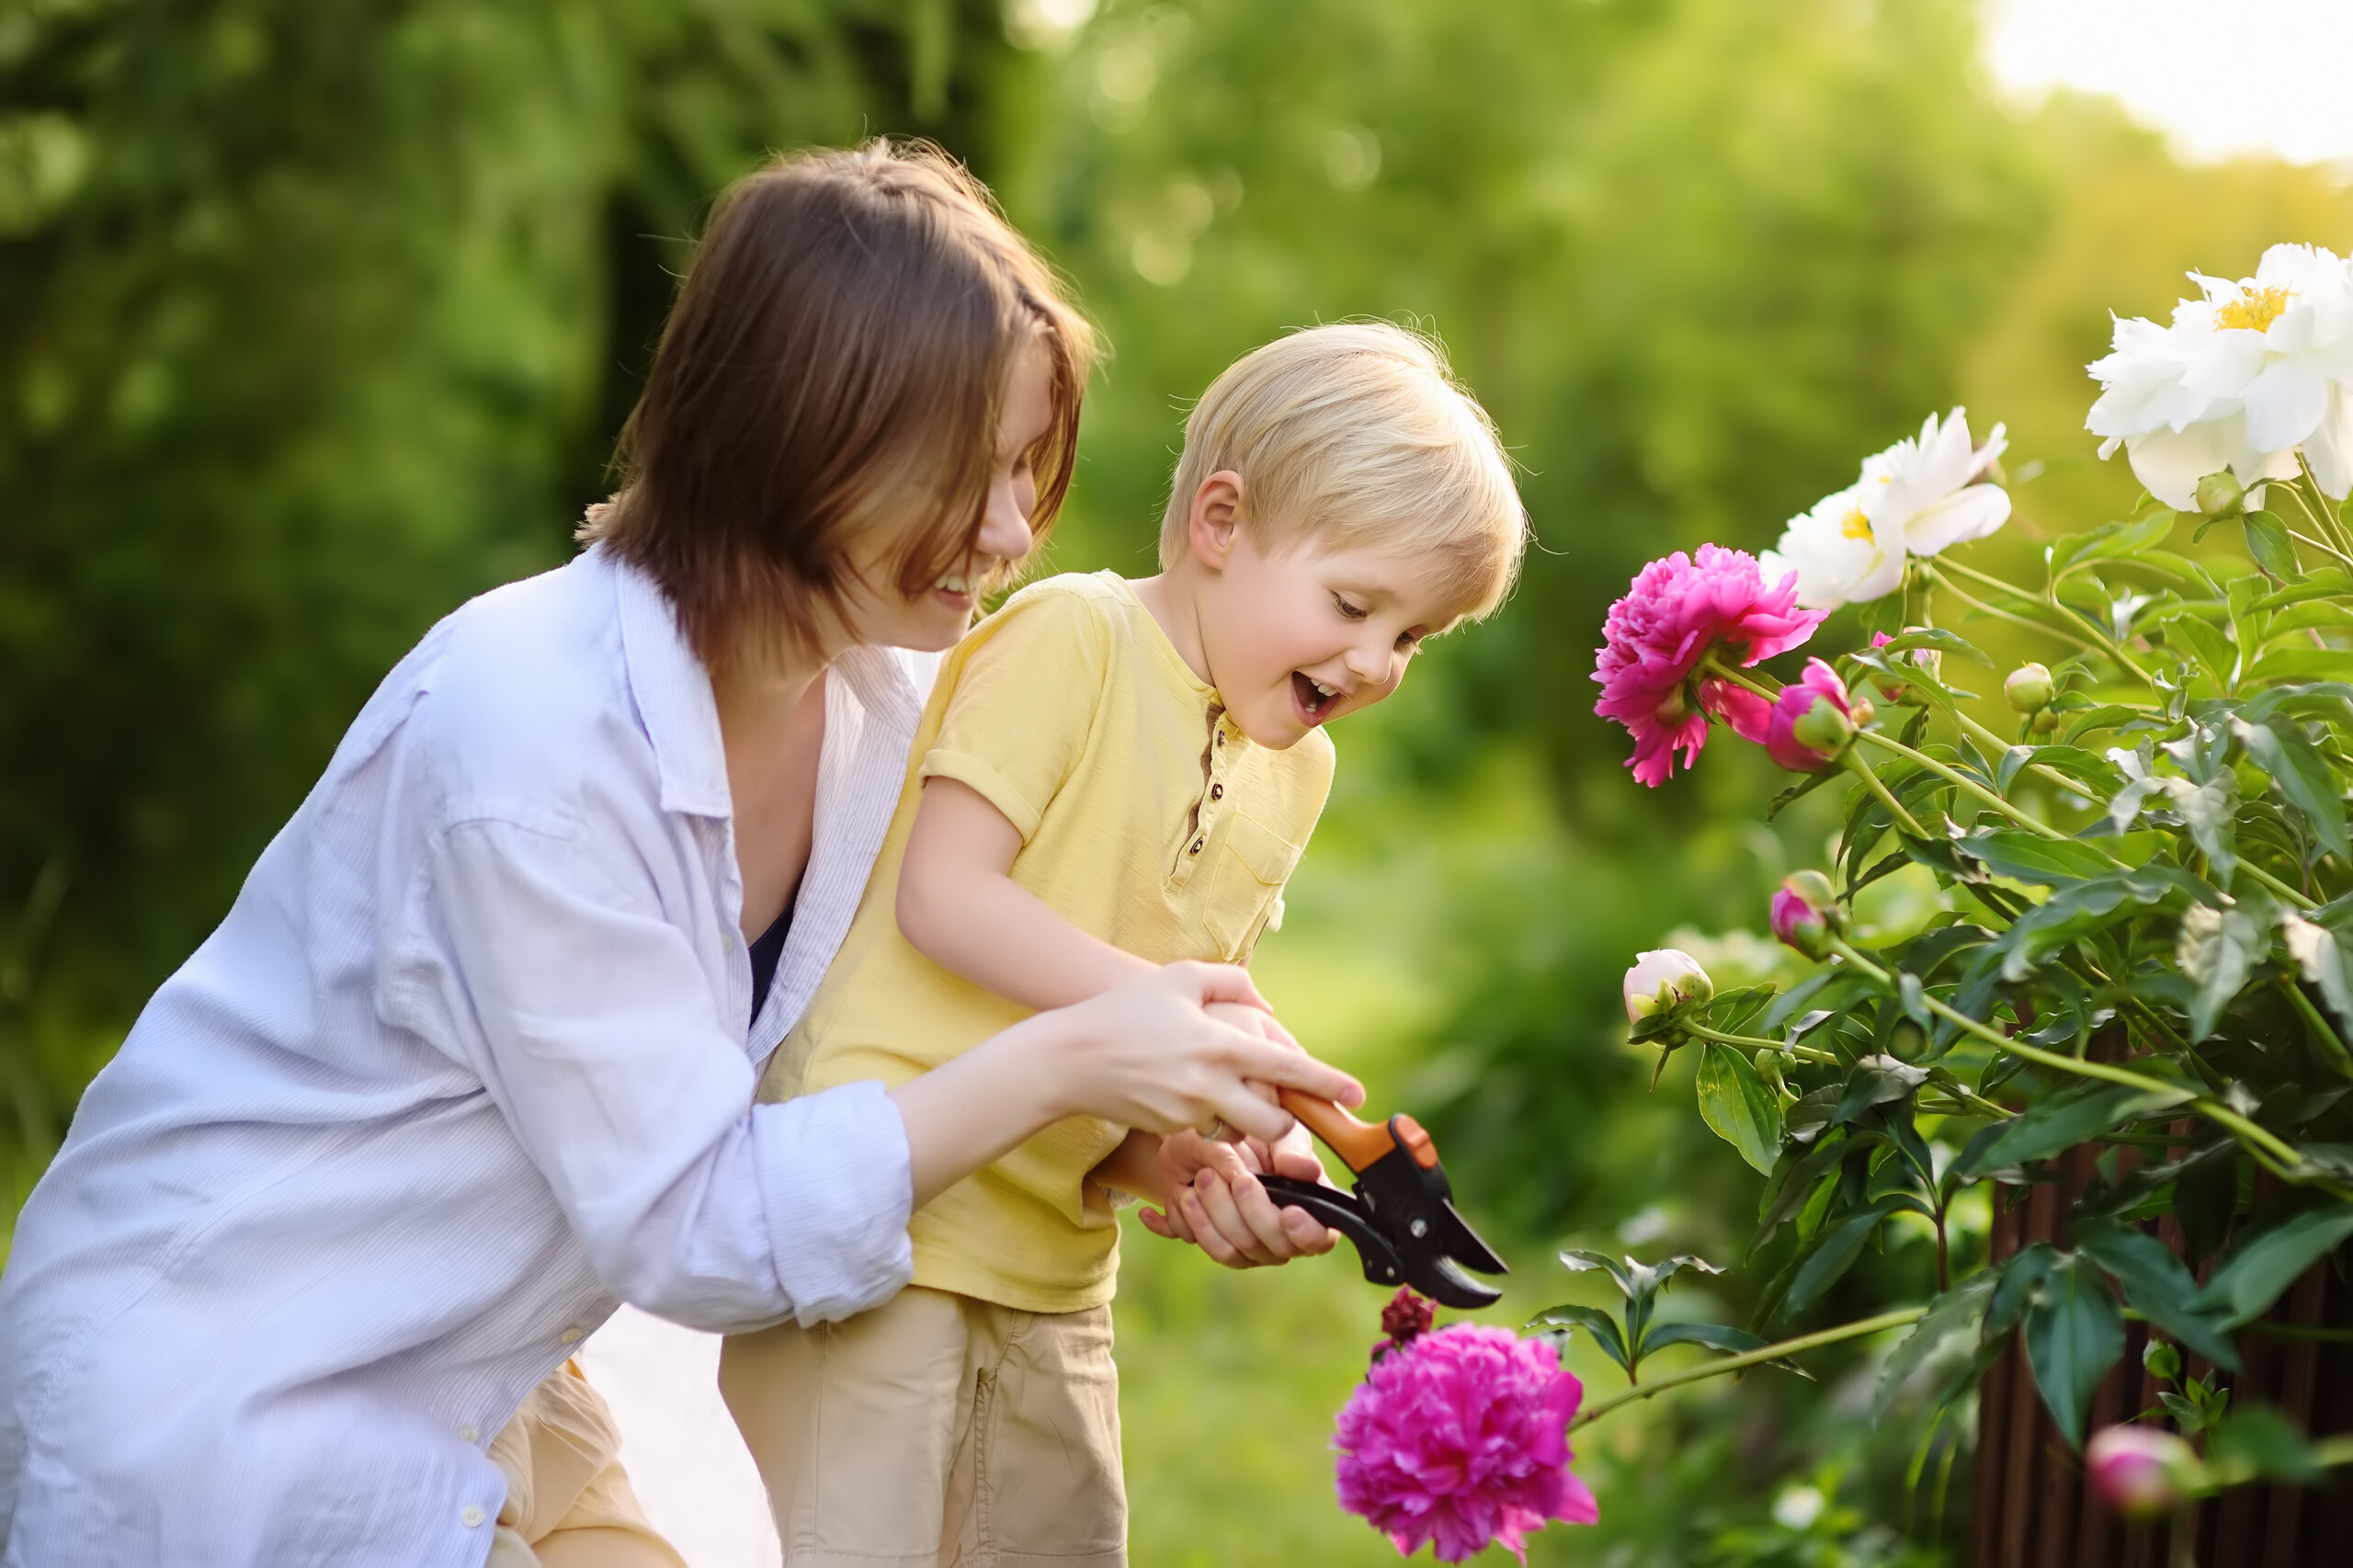 mom and child cutting flowers in garden